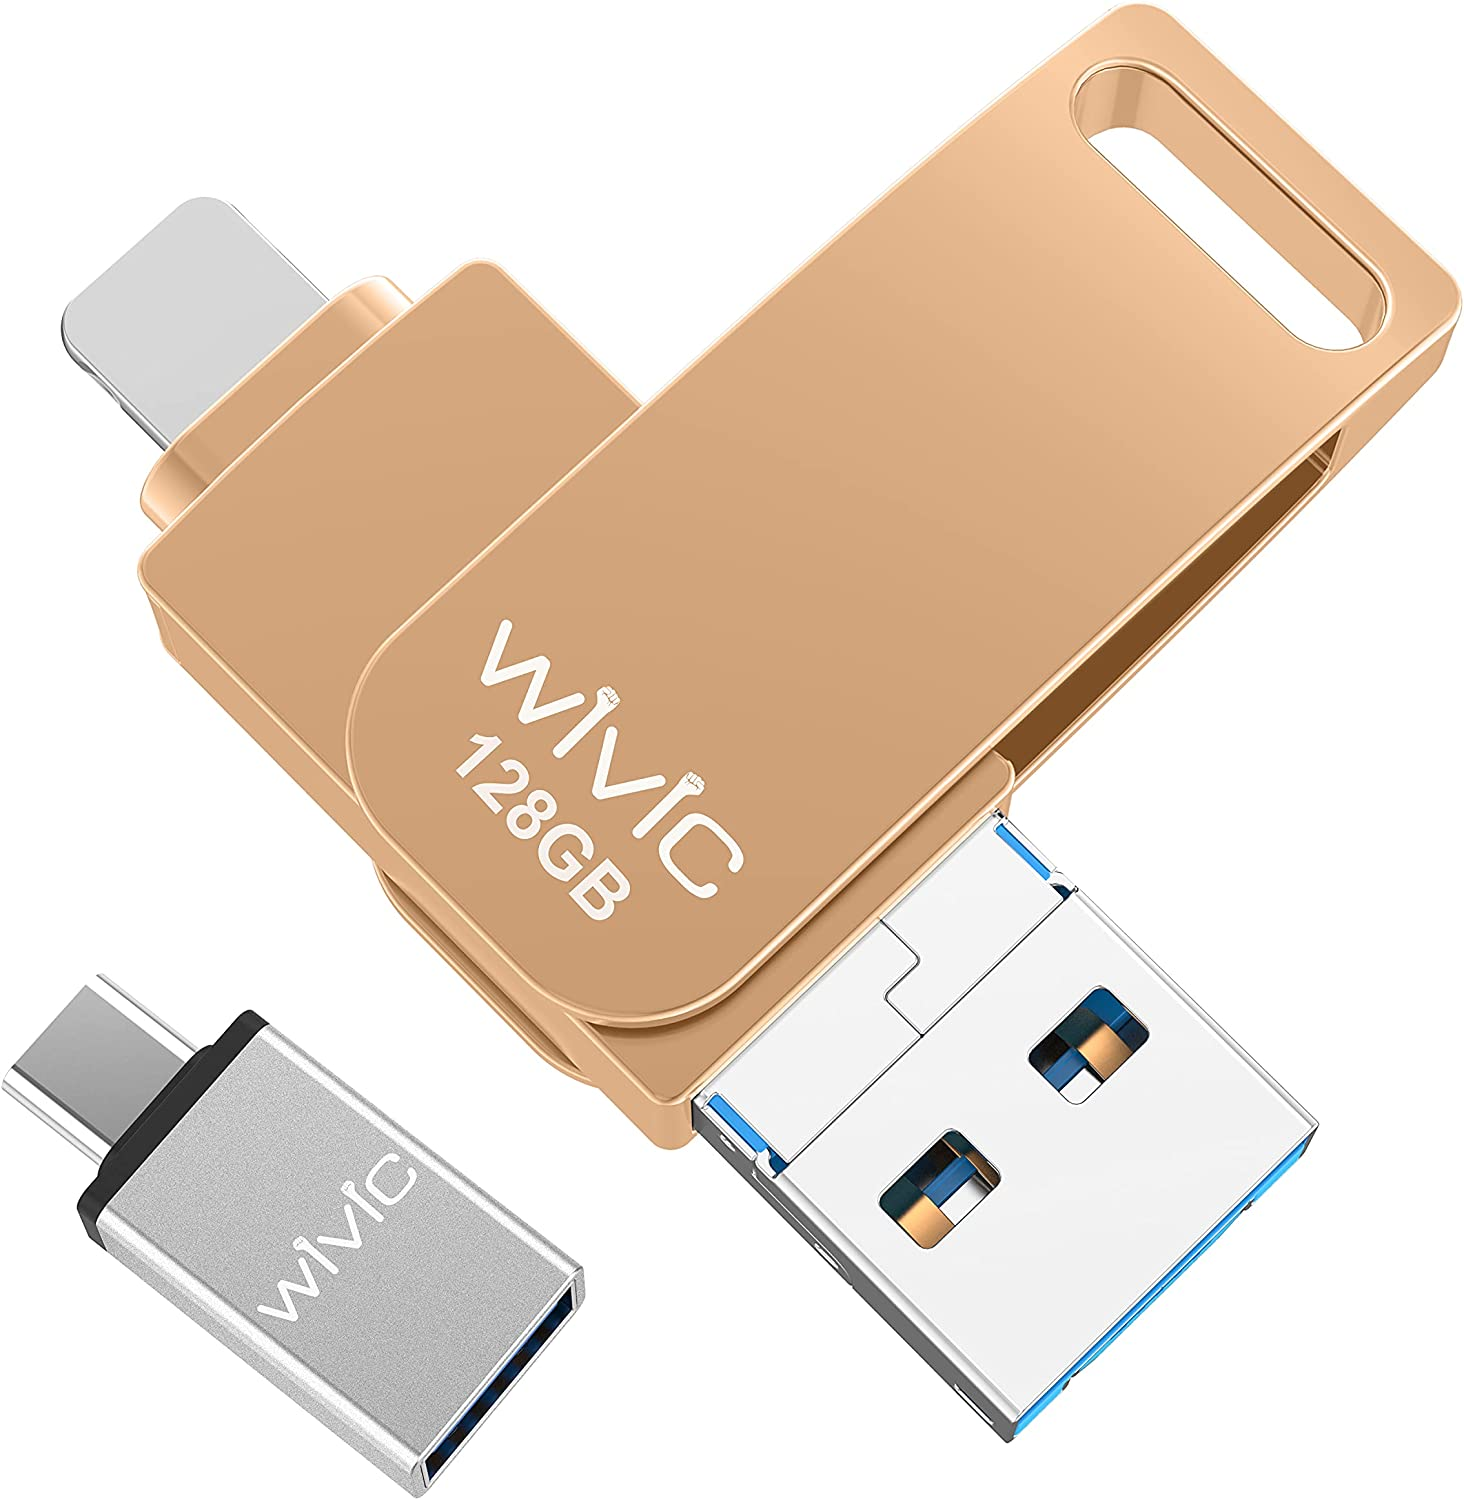 WIVIC USB 3.0 128GB iPhone Photo Stick $14.70 Coupon